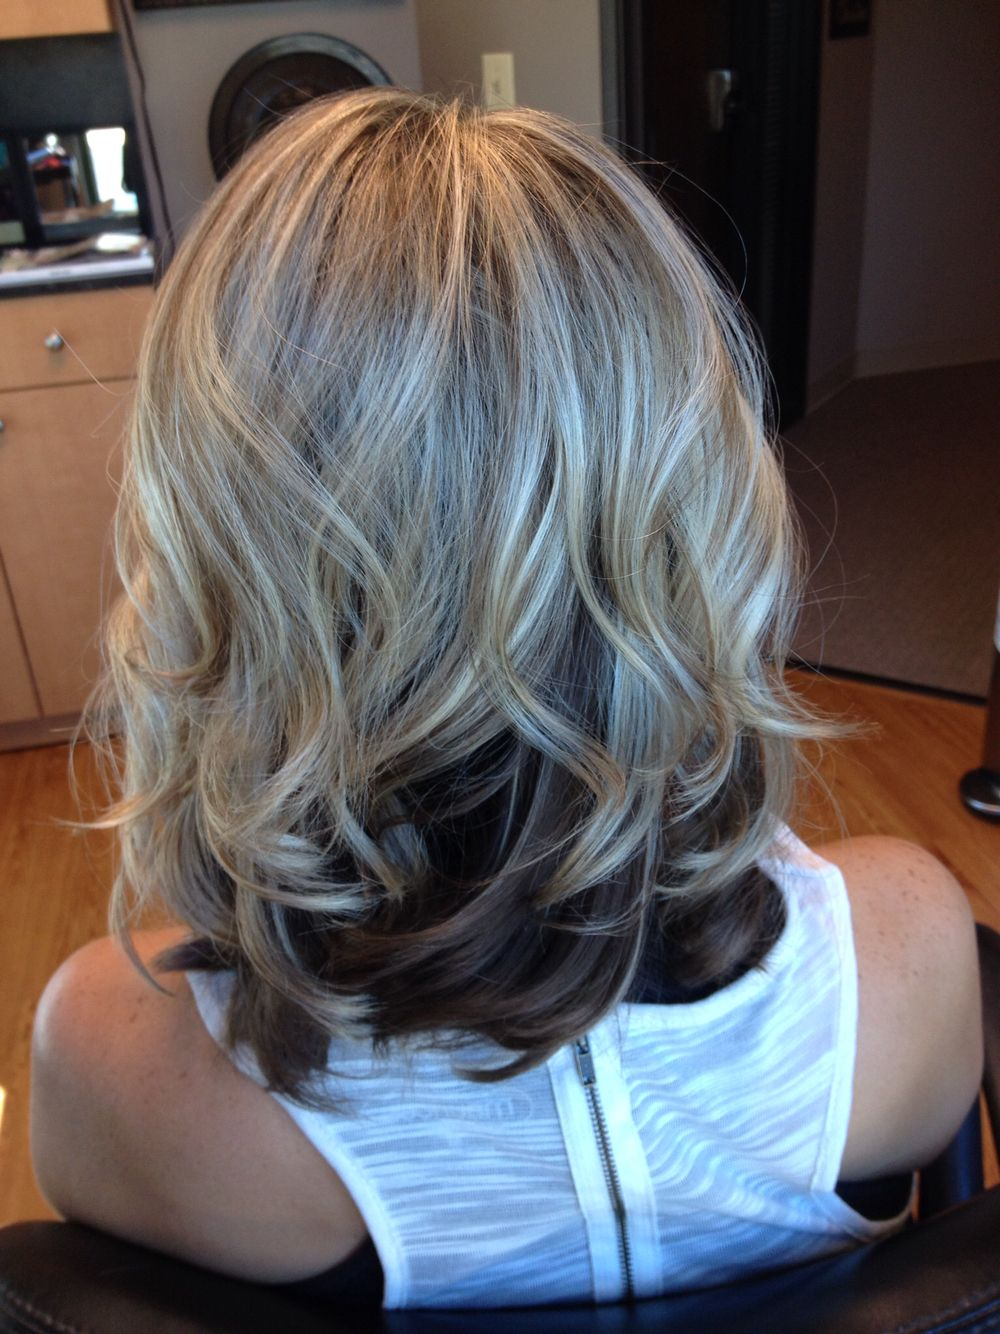 Blonde Top Dark Underneath Hair By Melissa Lobaito In 2018